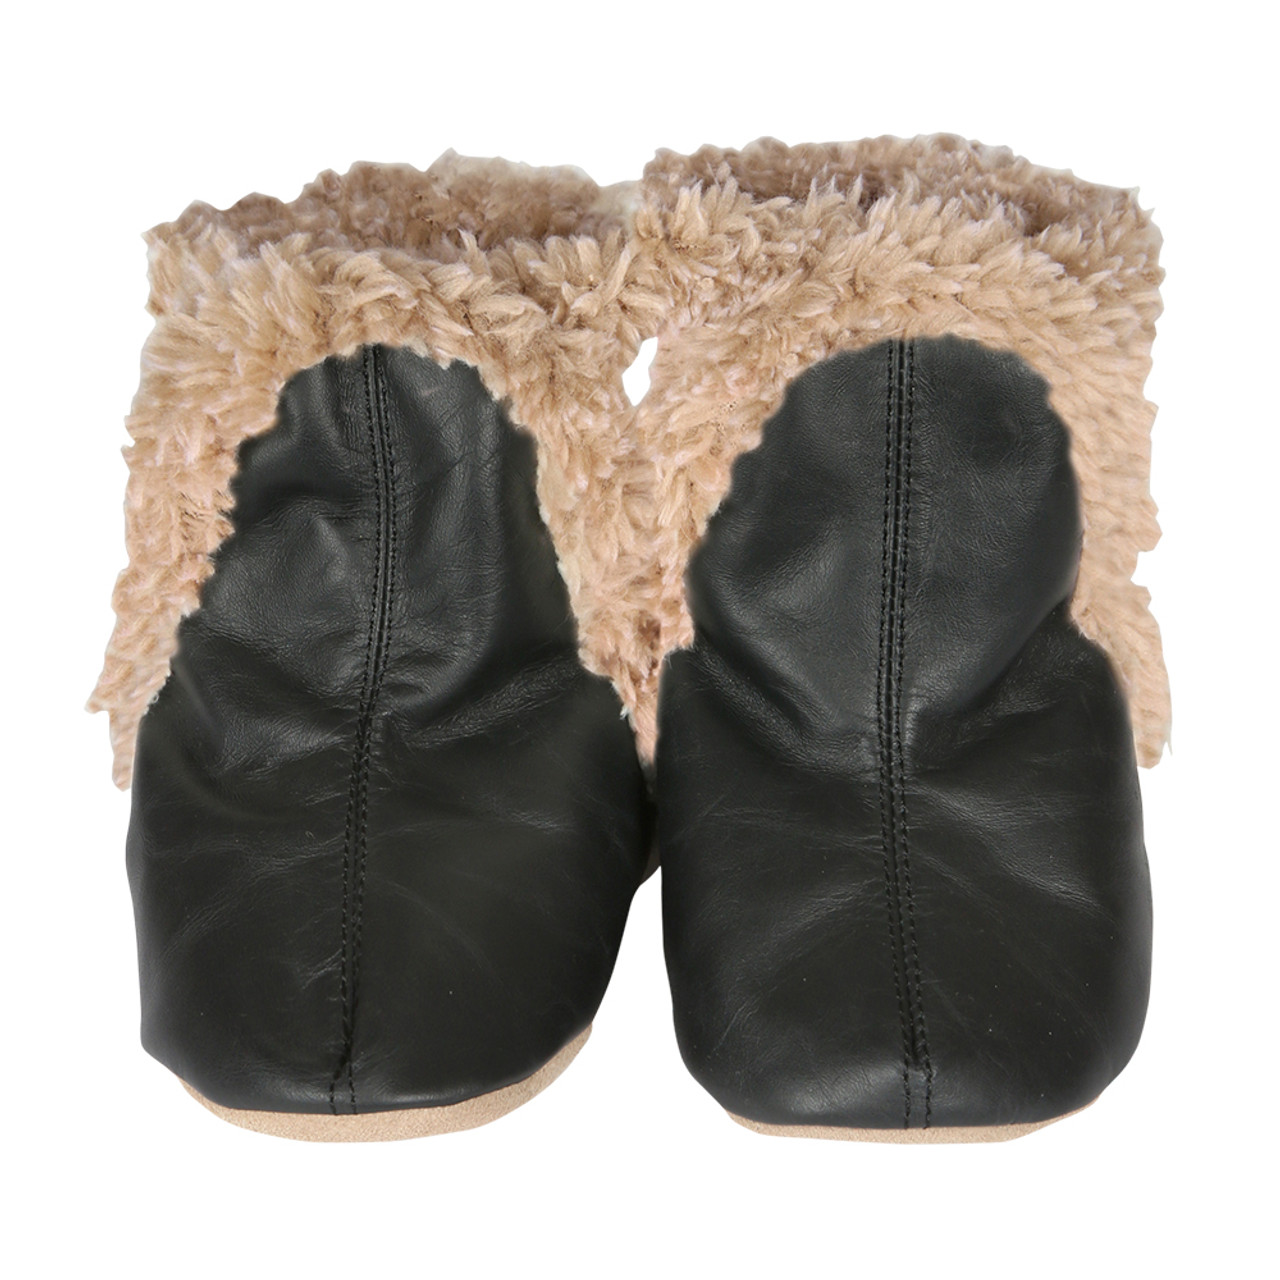 d184c7e4a7af5 Baby boots for boys and girls. Black Leather